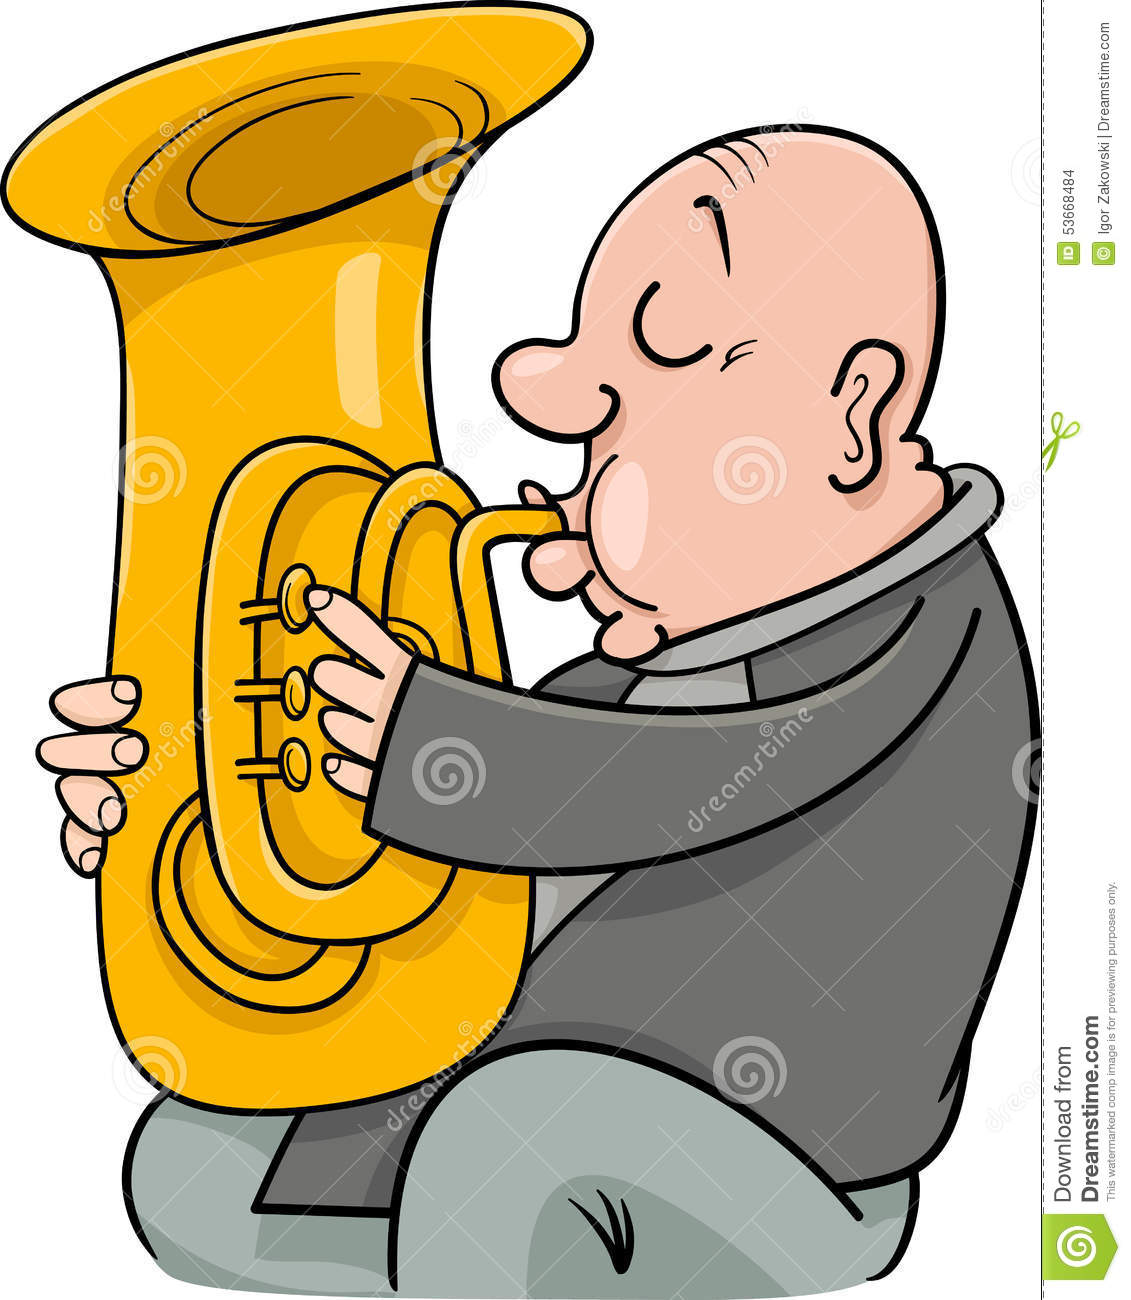 hight resolution of cartoon illustration of trumpeter musician playing the tuba wind instrument